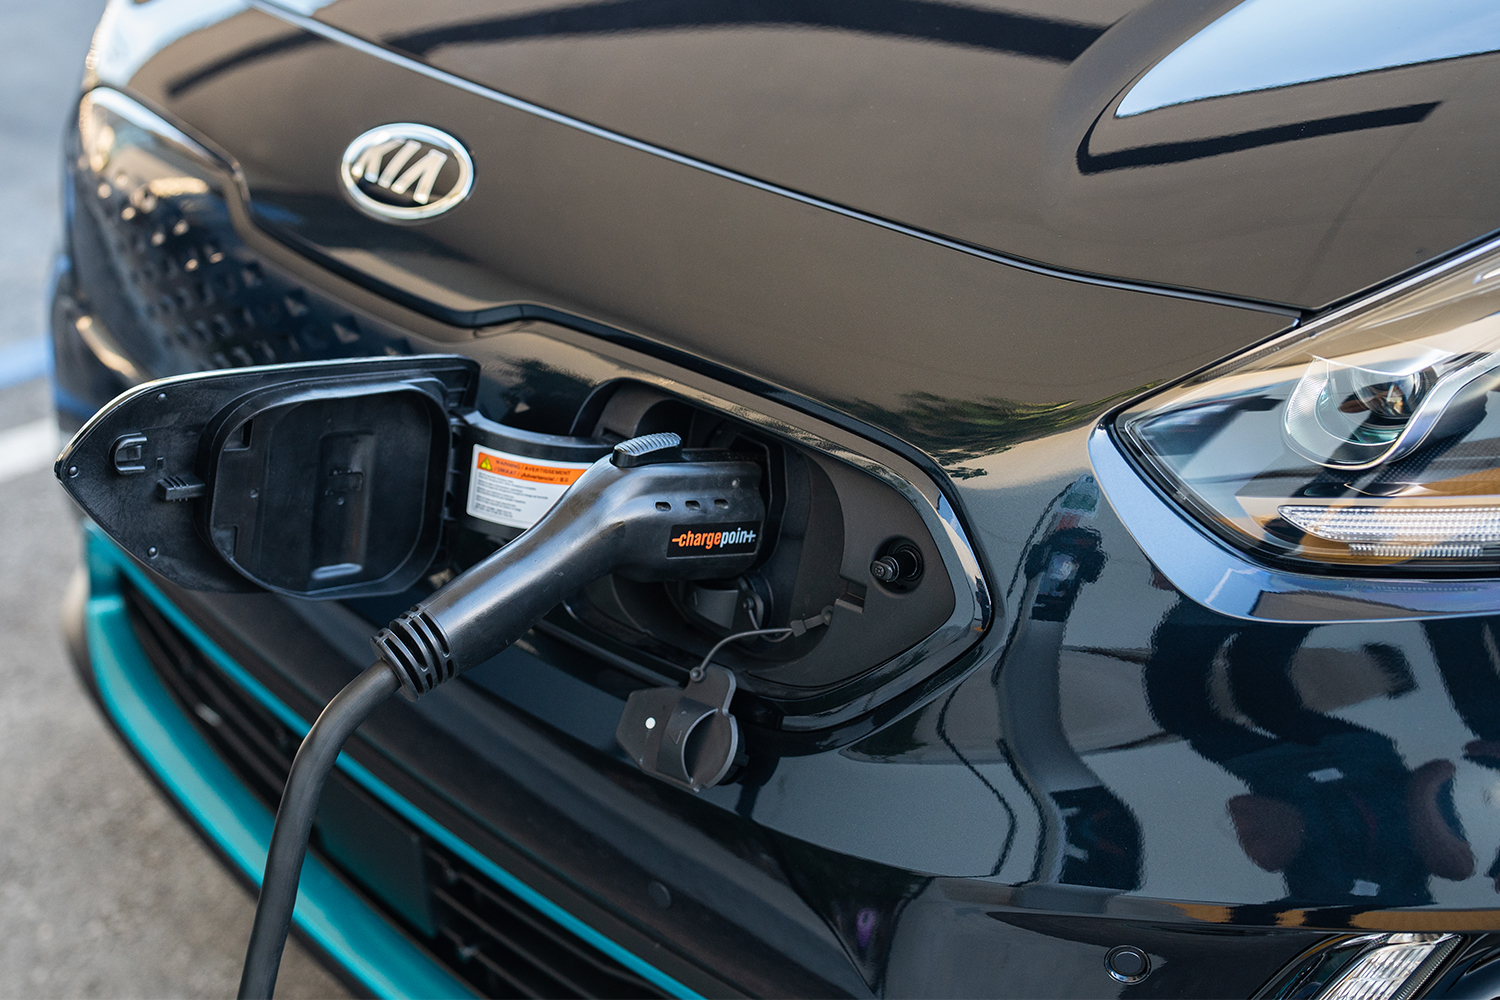 A ChargePoint electric car charger plugged into the front of the Kia Niro EV crossover